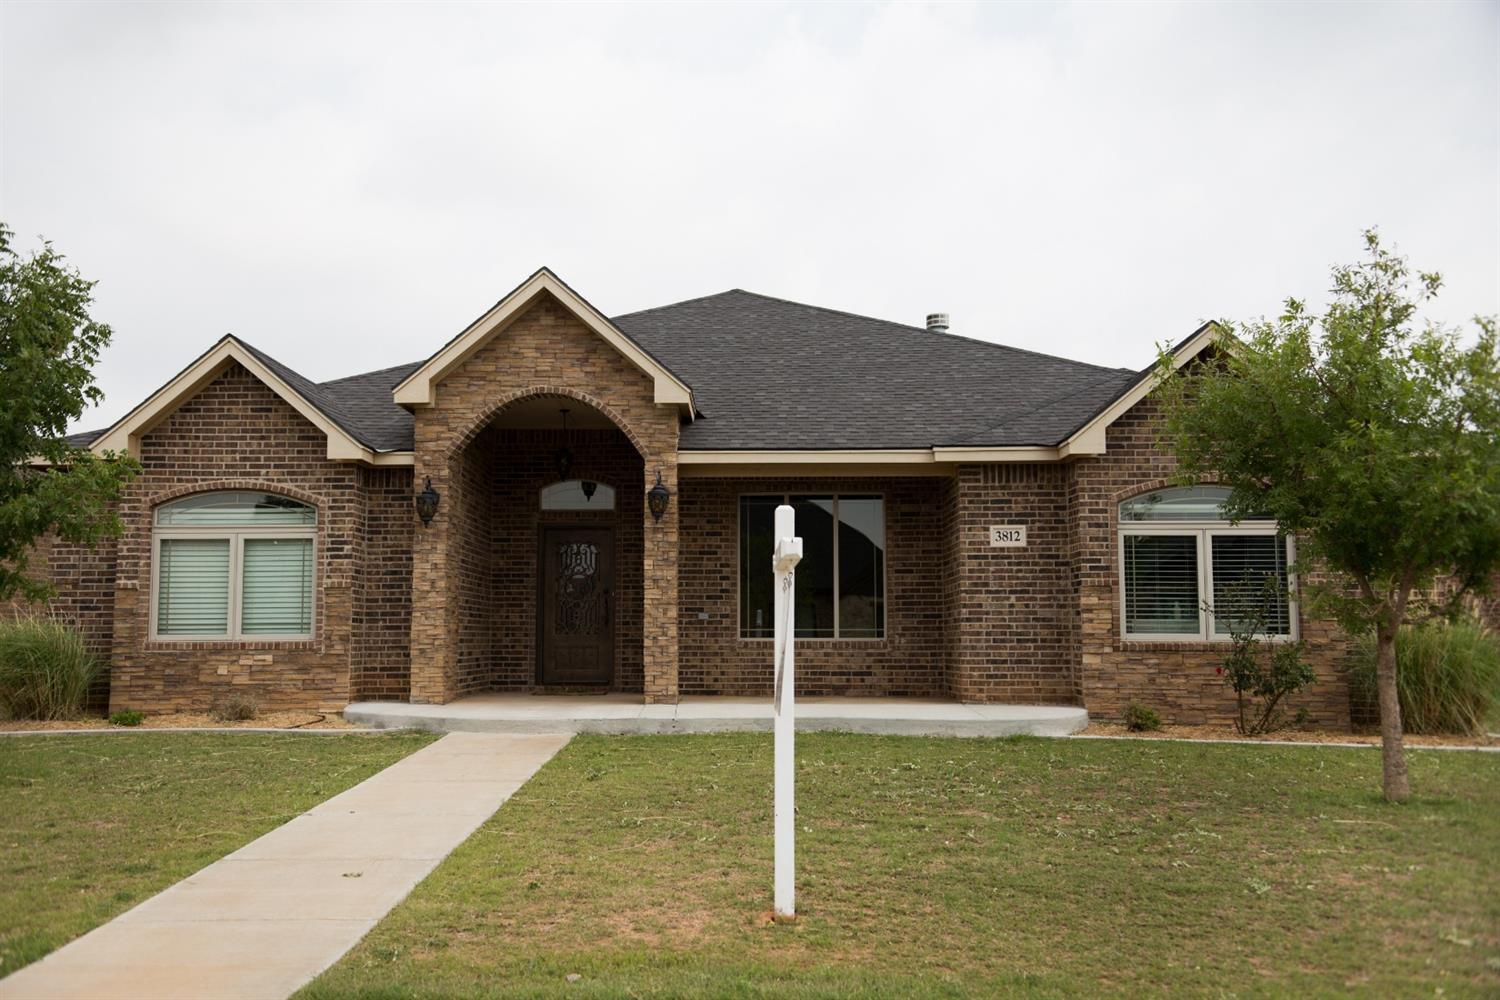 3812 134th Street, Lubbock in Lubbock County, TX 79423 Home for Sale